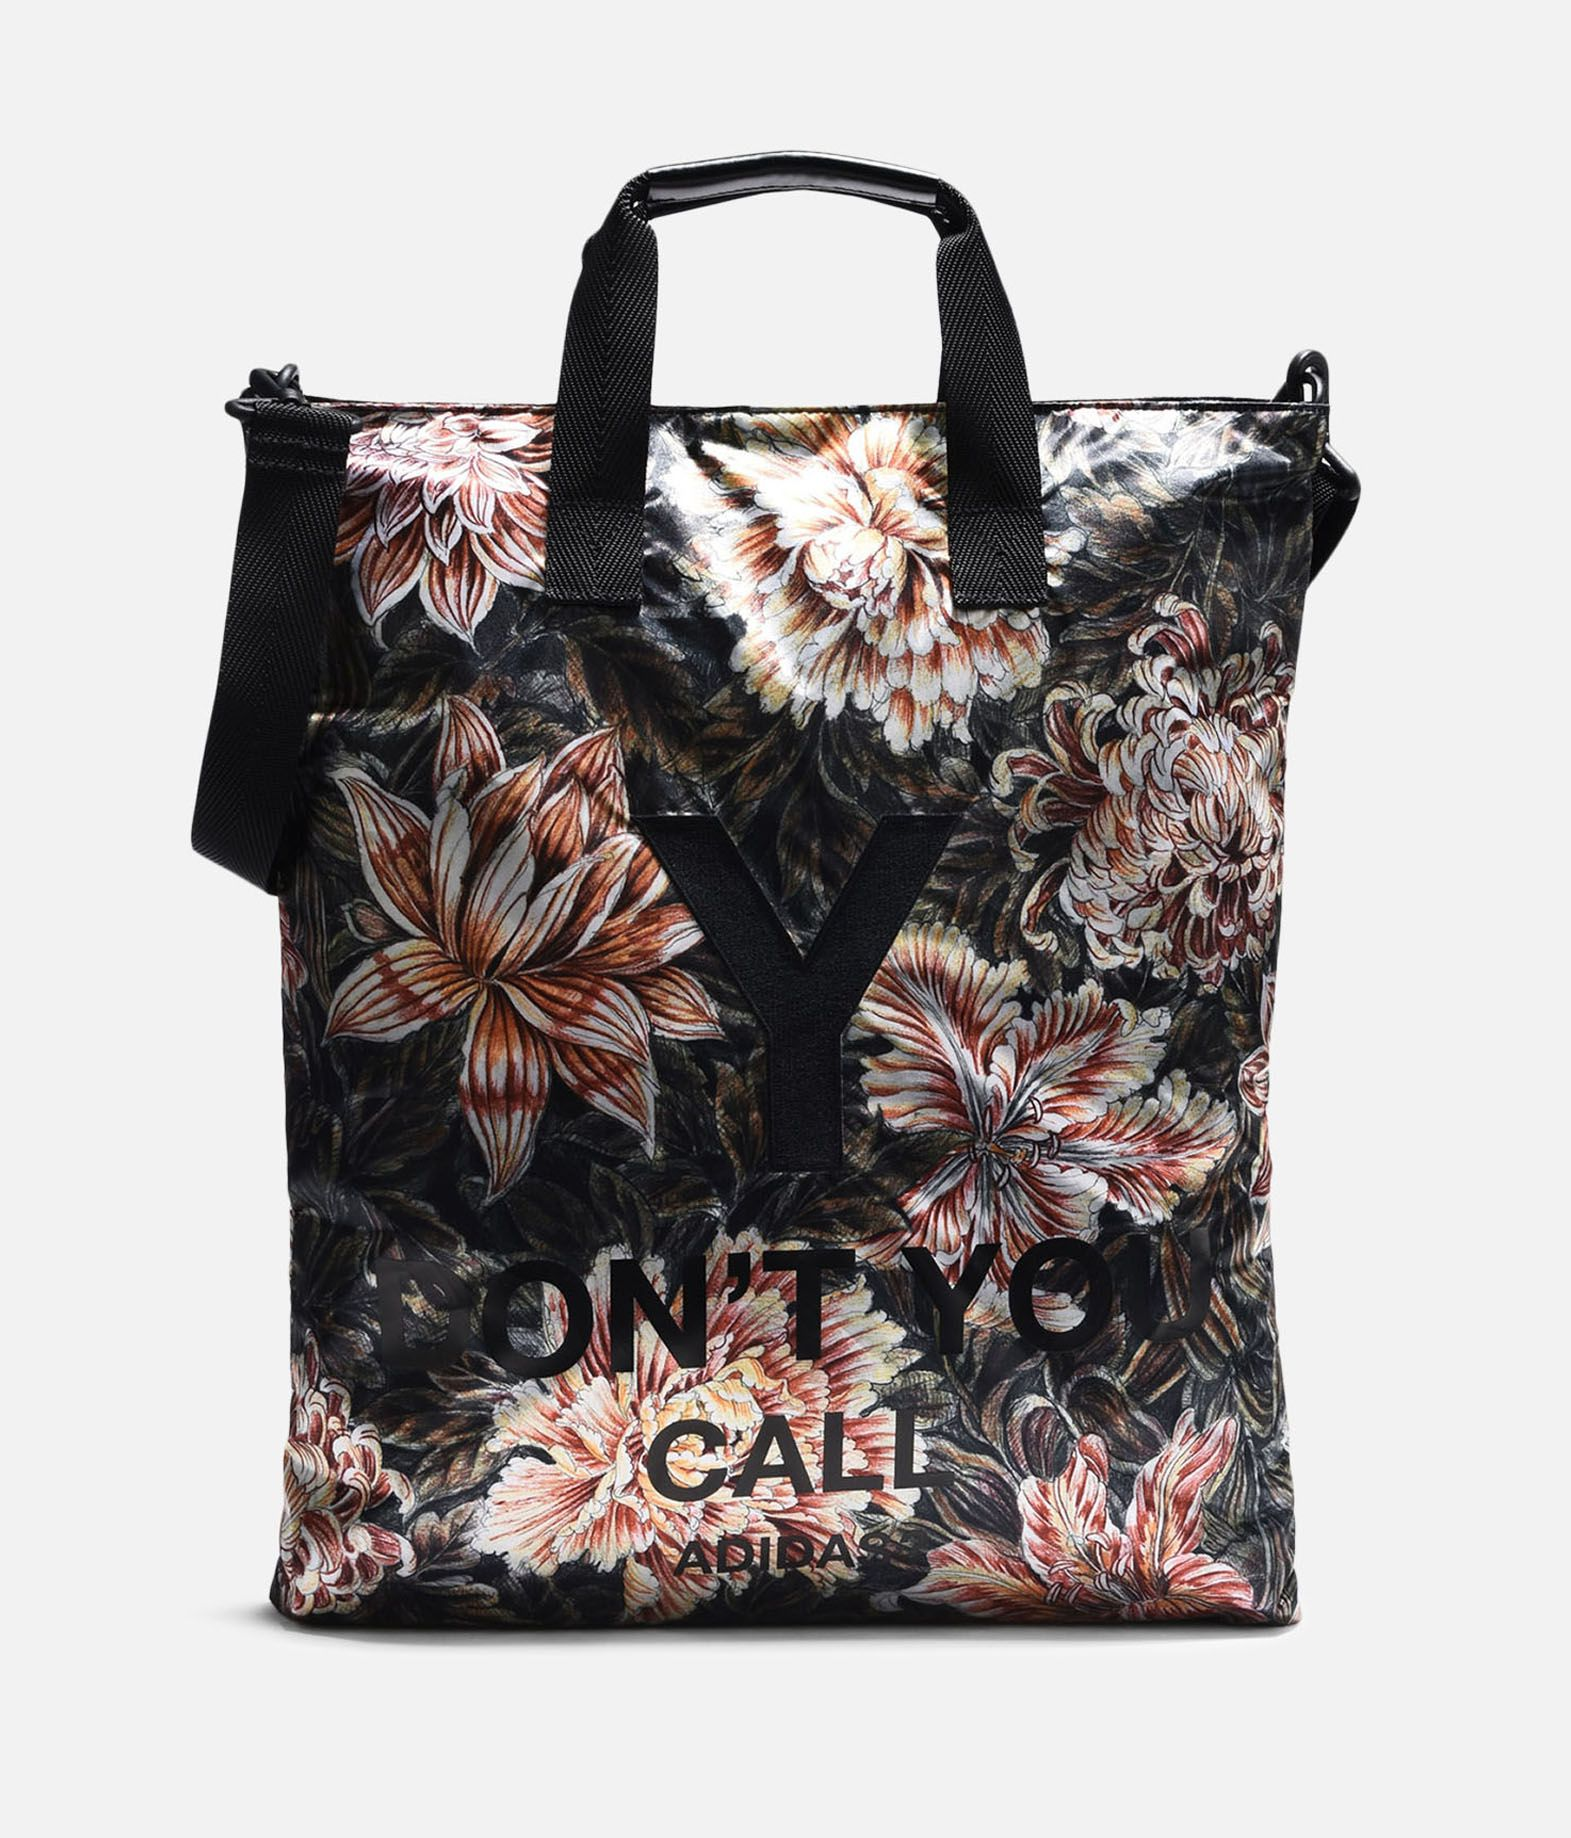 Y 3 AOP Tote Bag Totes   Adidas Y-3 Official Site 355ccfe765